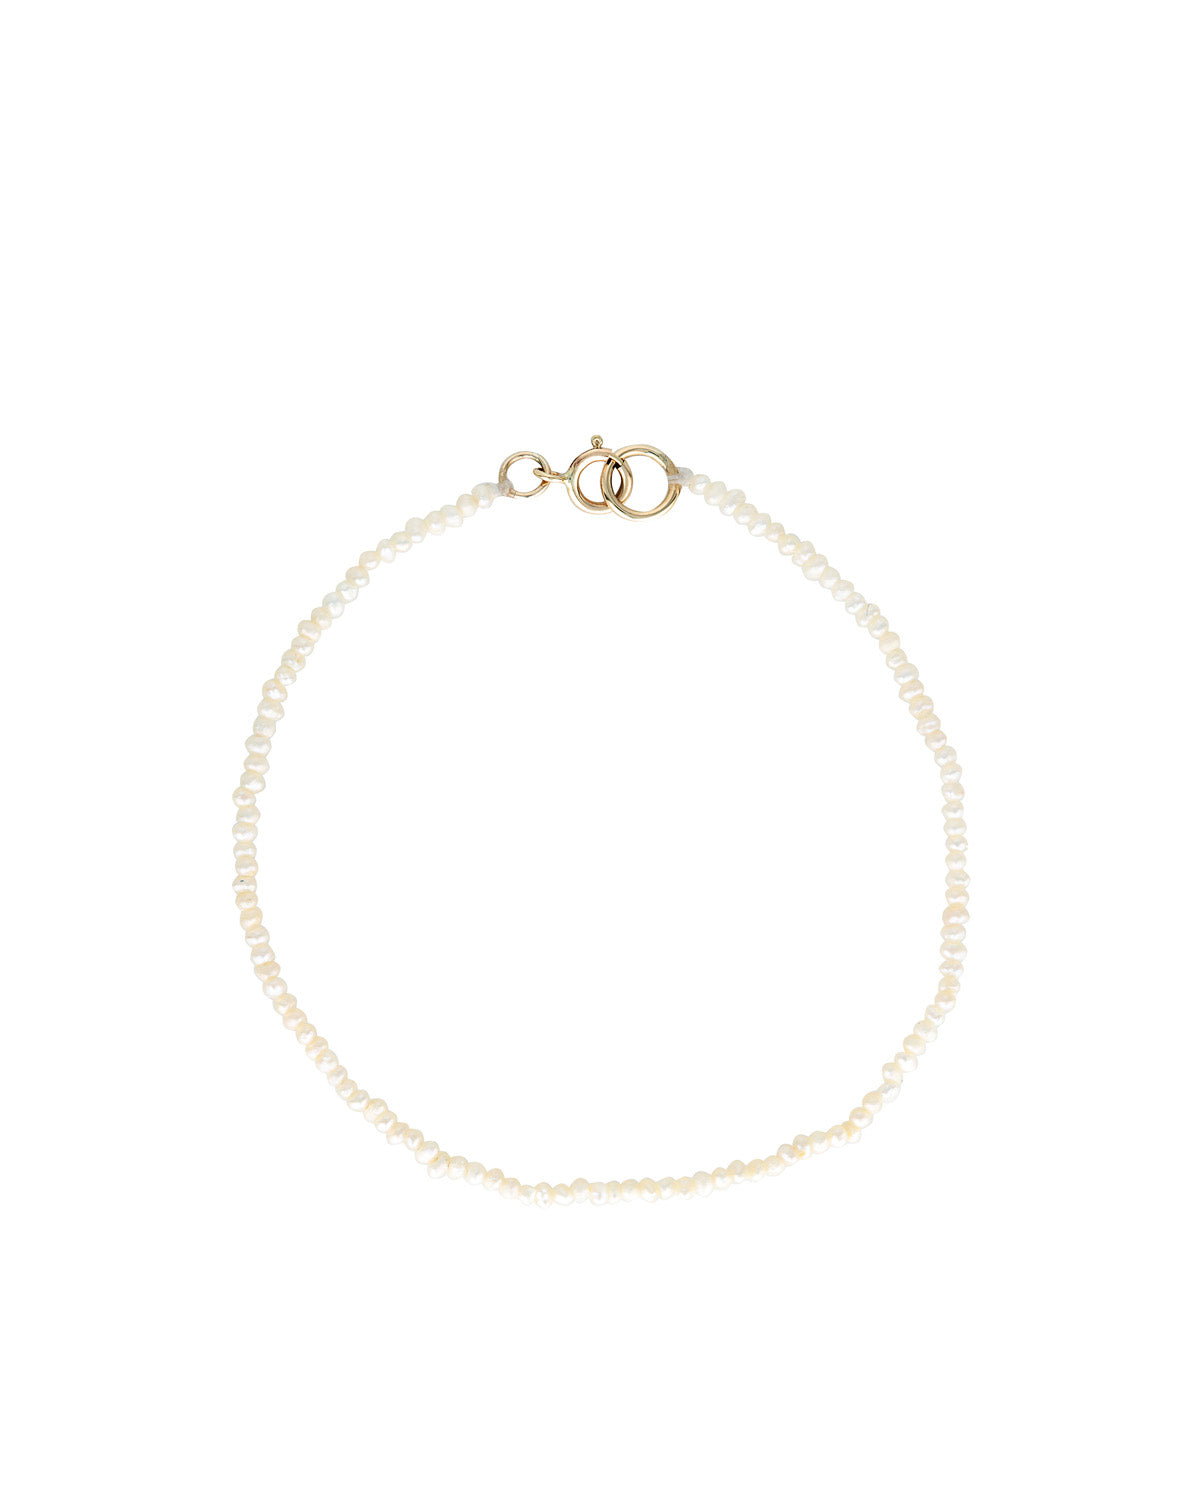 Luminous Pearl Bracelet | 9k Gold